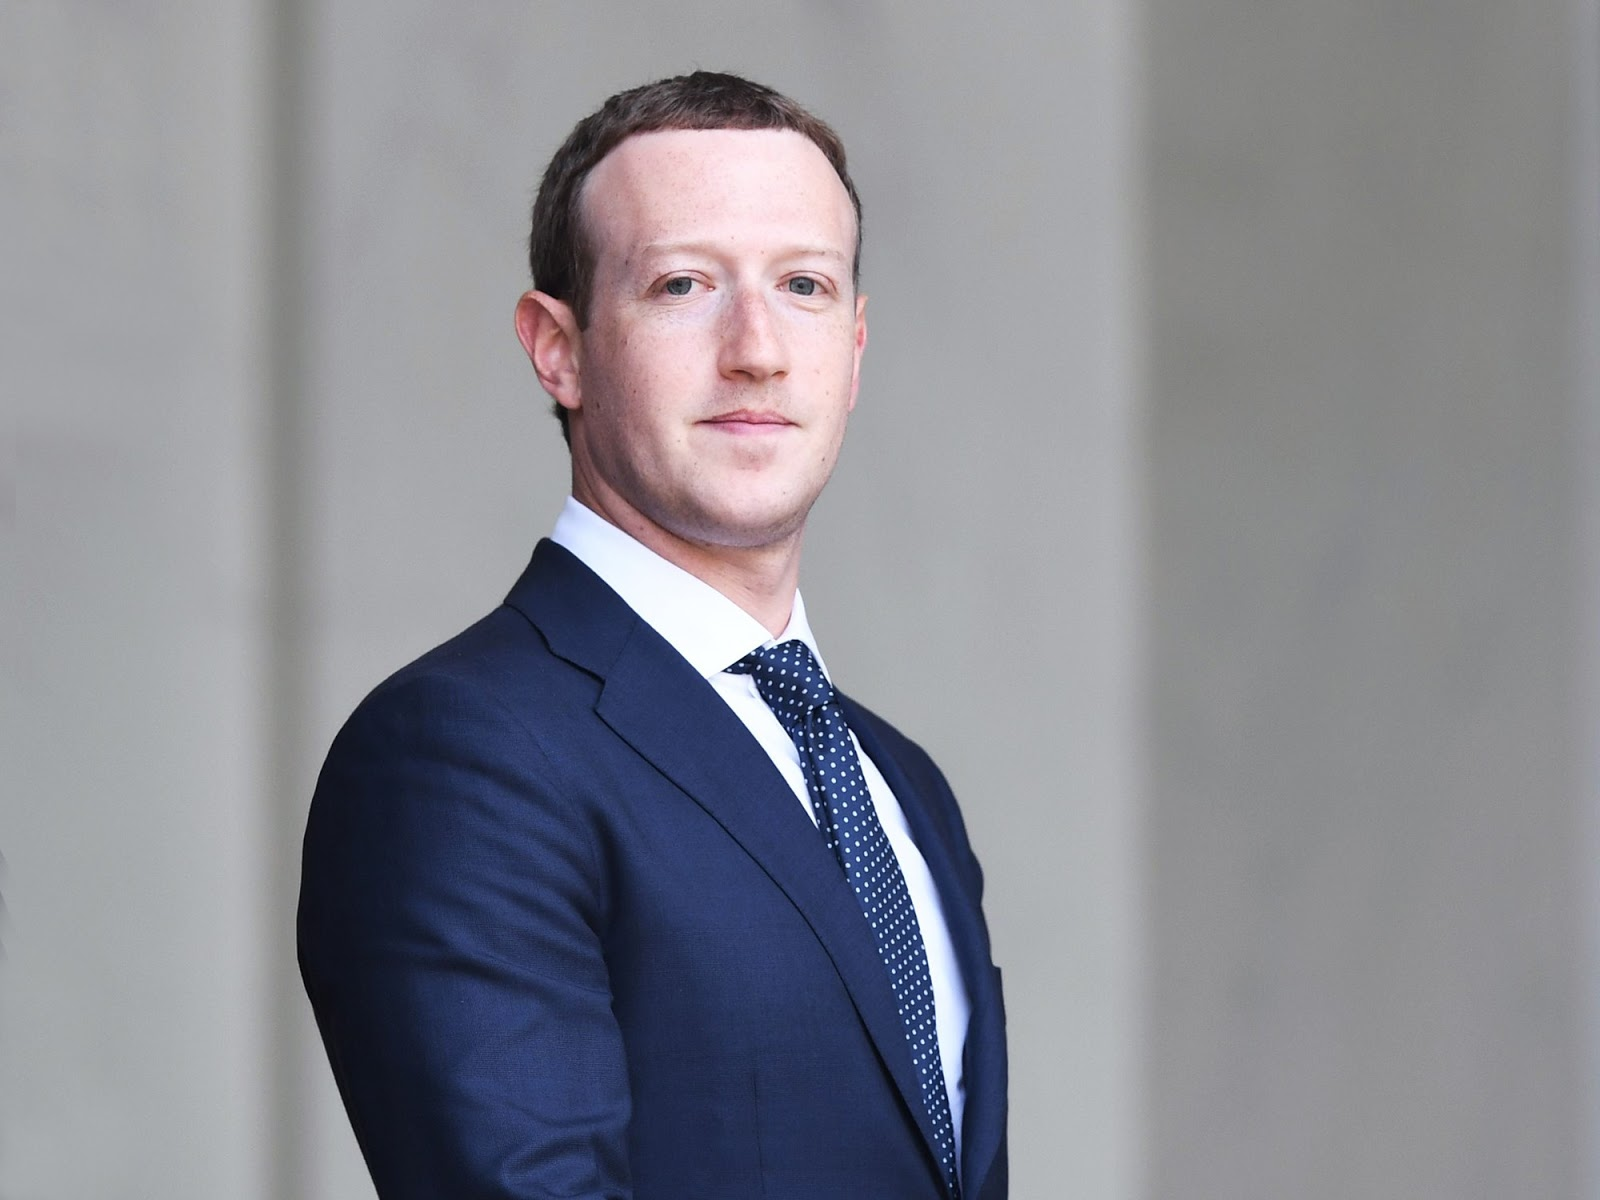 Mark Zuckerberg: $62.3 Billion